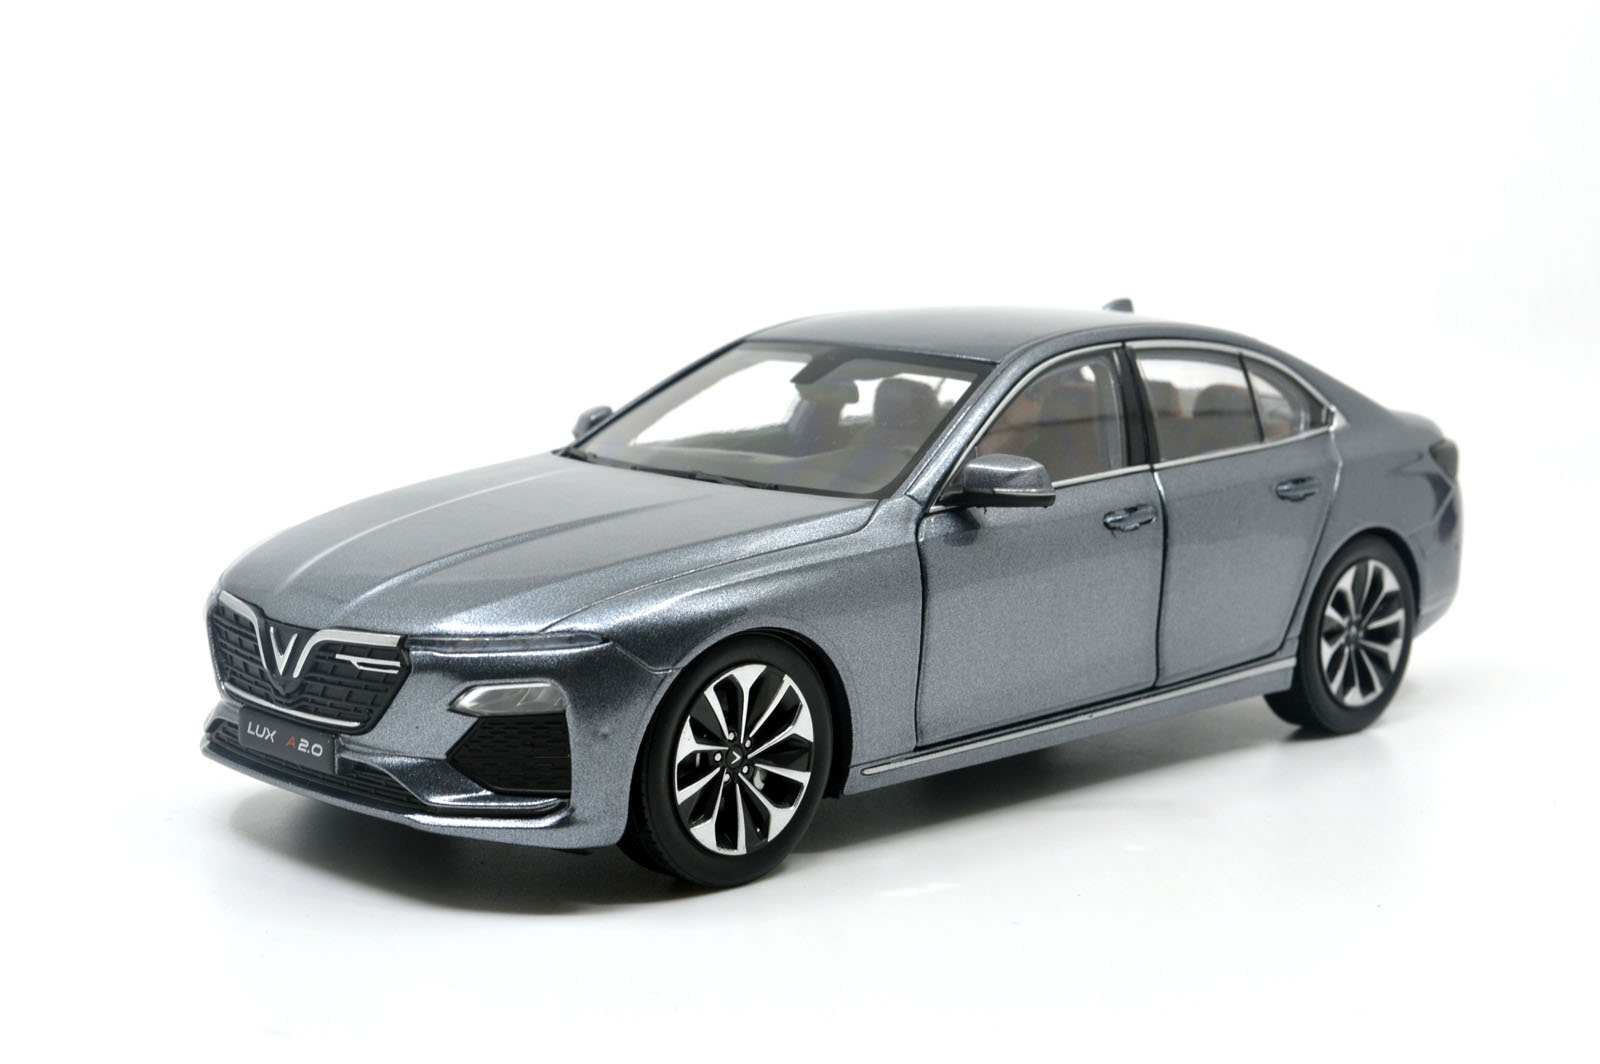 Vinfast LUX A2.0 SEDAN MODEL CAR 1/24 SCALE 5